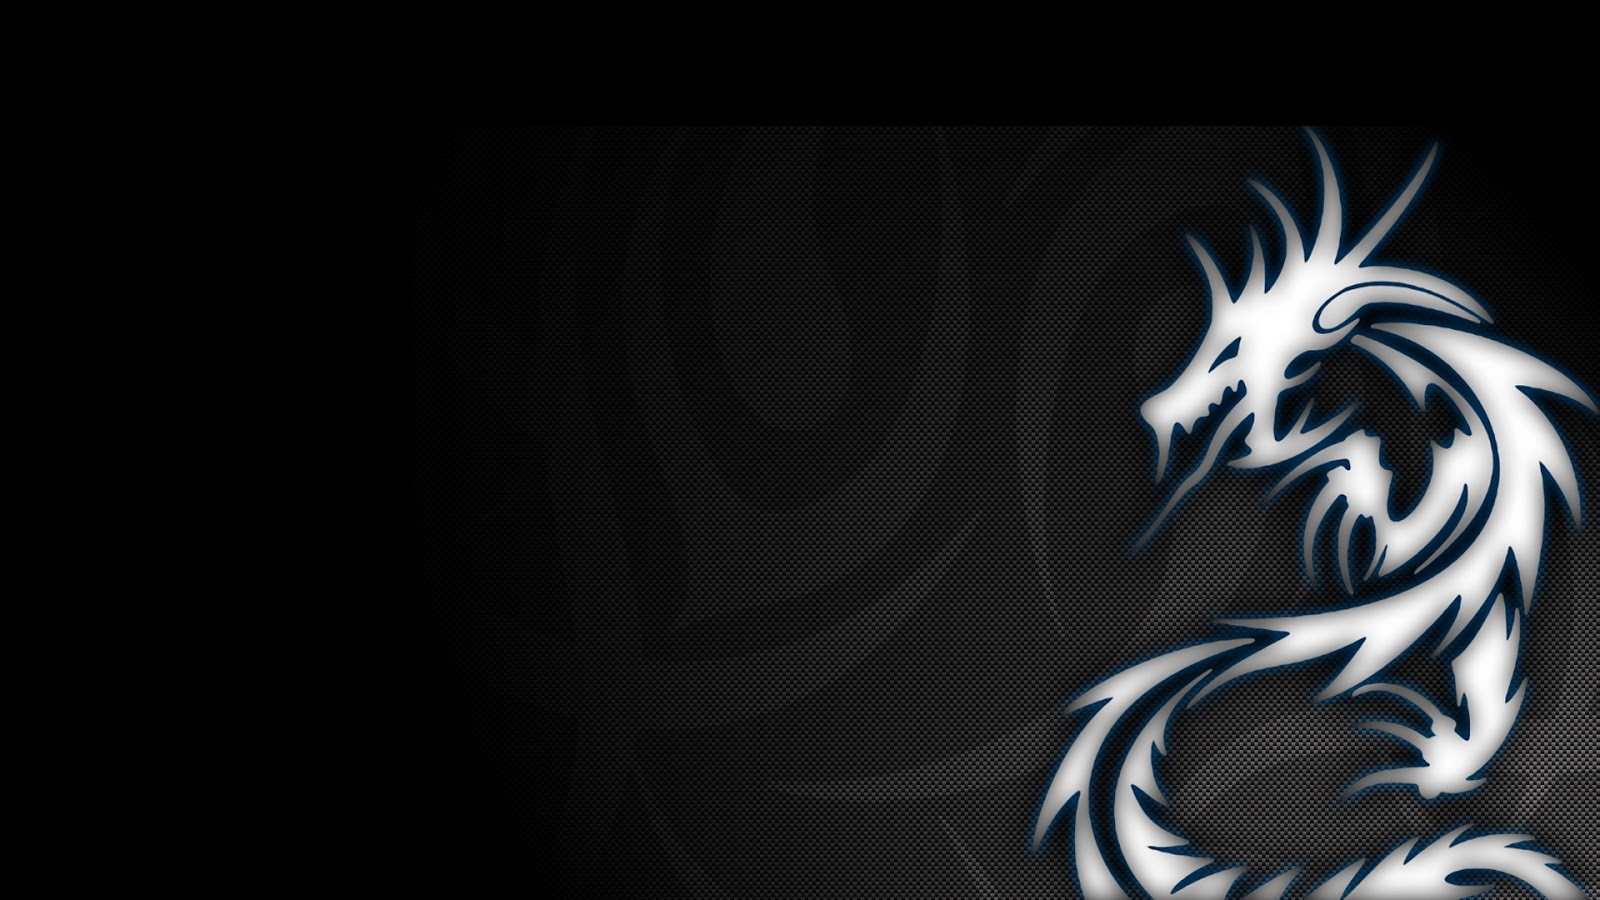 dragon icon hd wallpapers 1080p | hd wallpaper 1080p